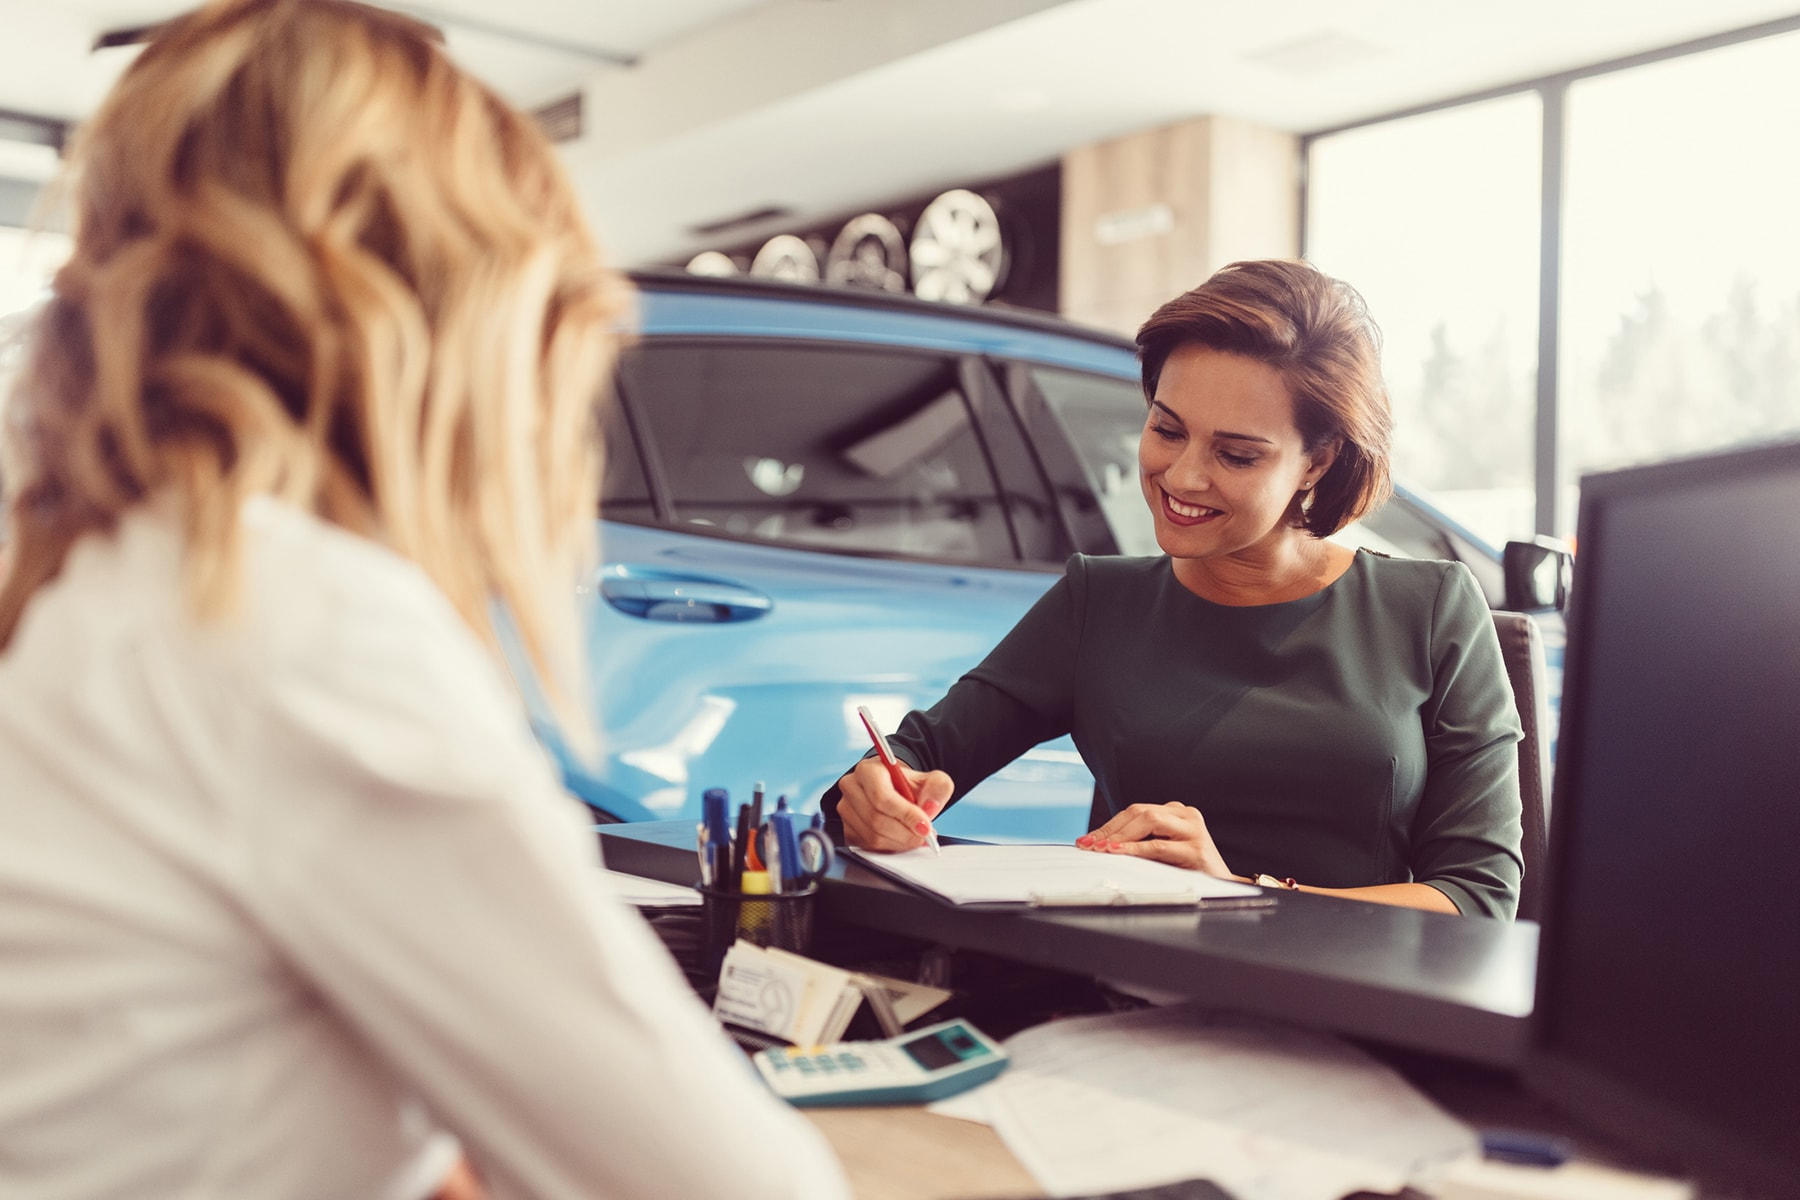 A woman fills out a loan application for a new car